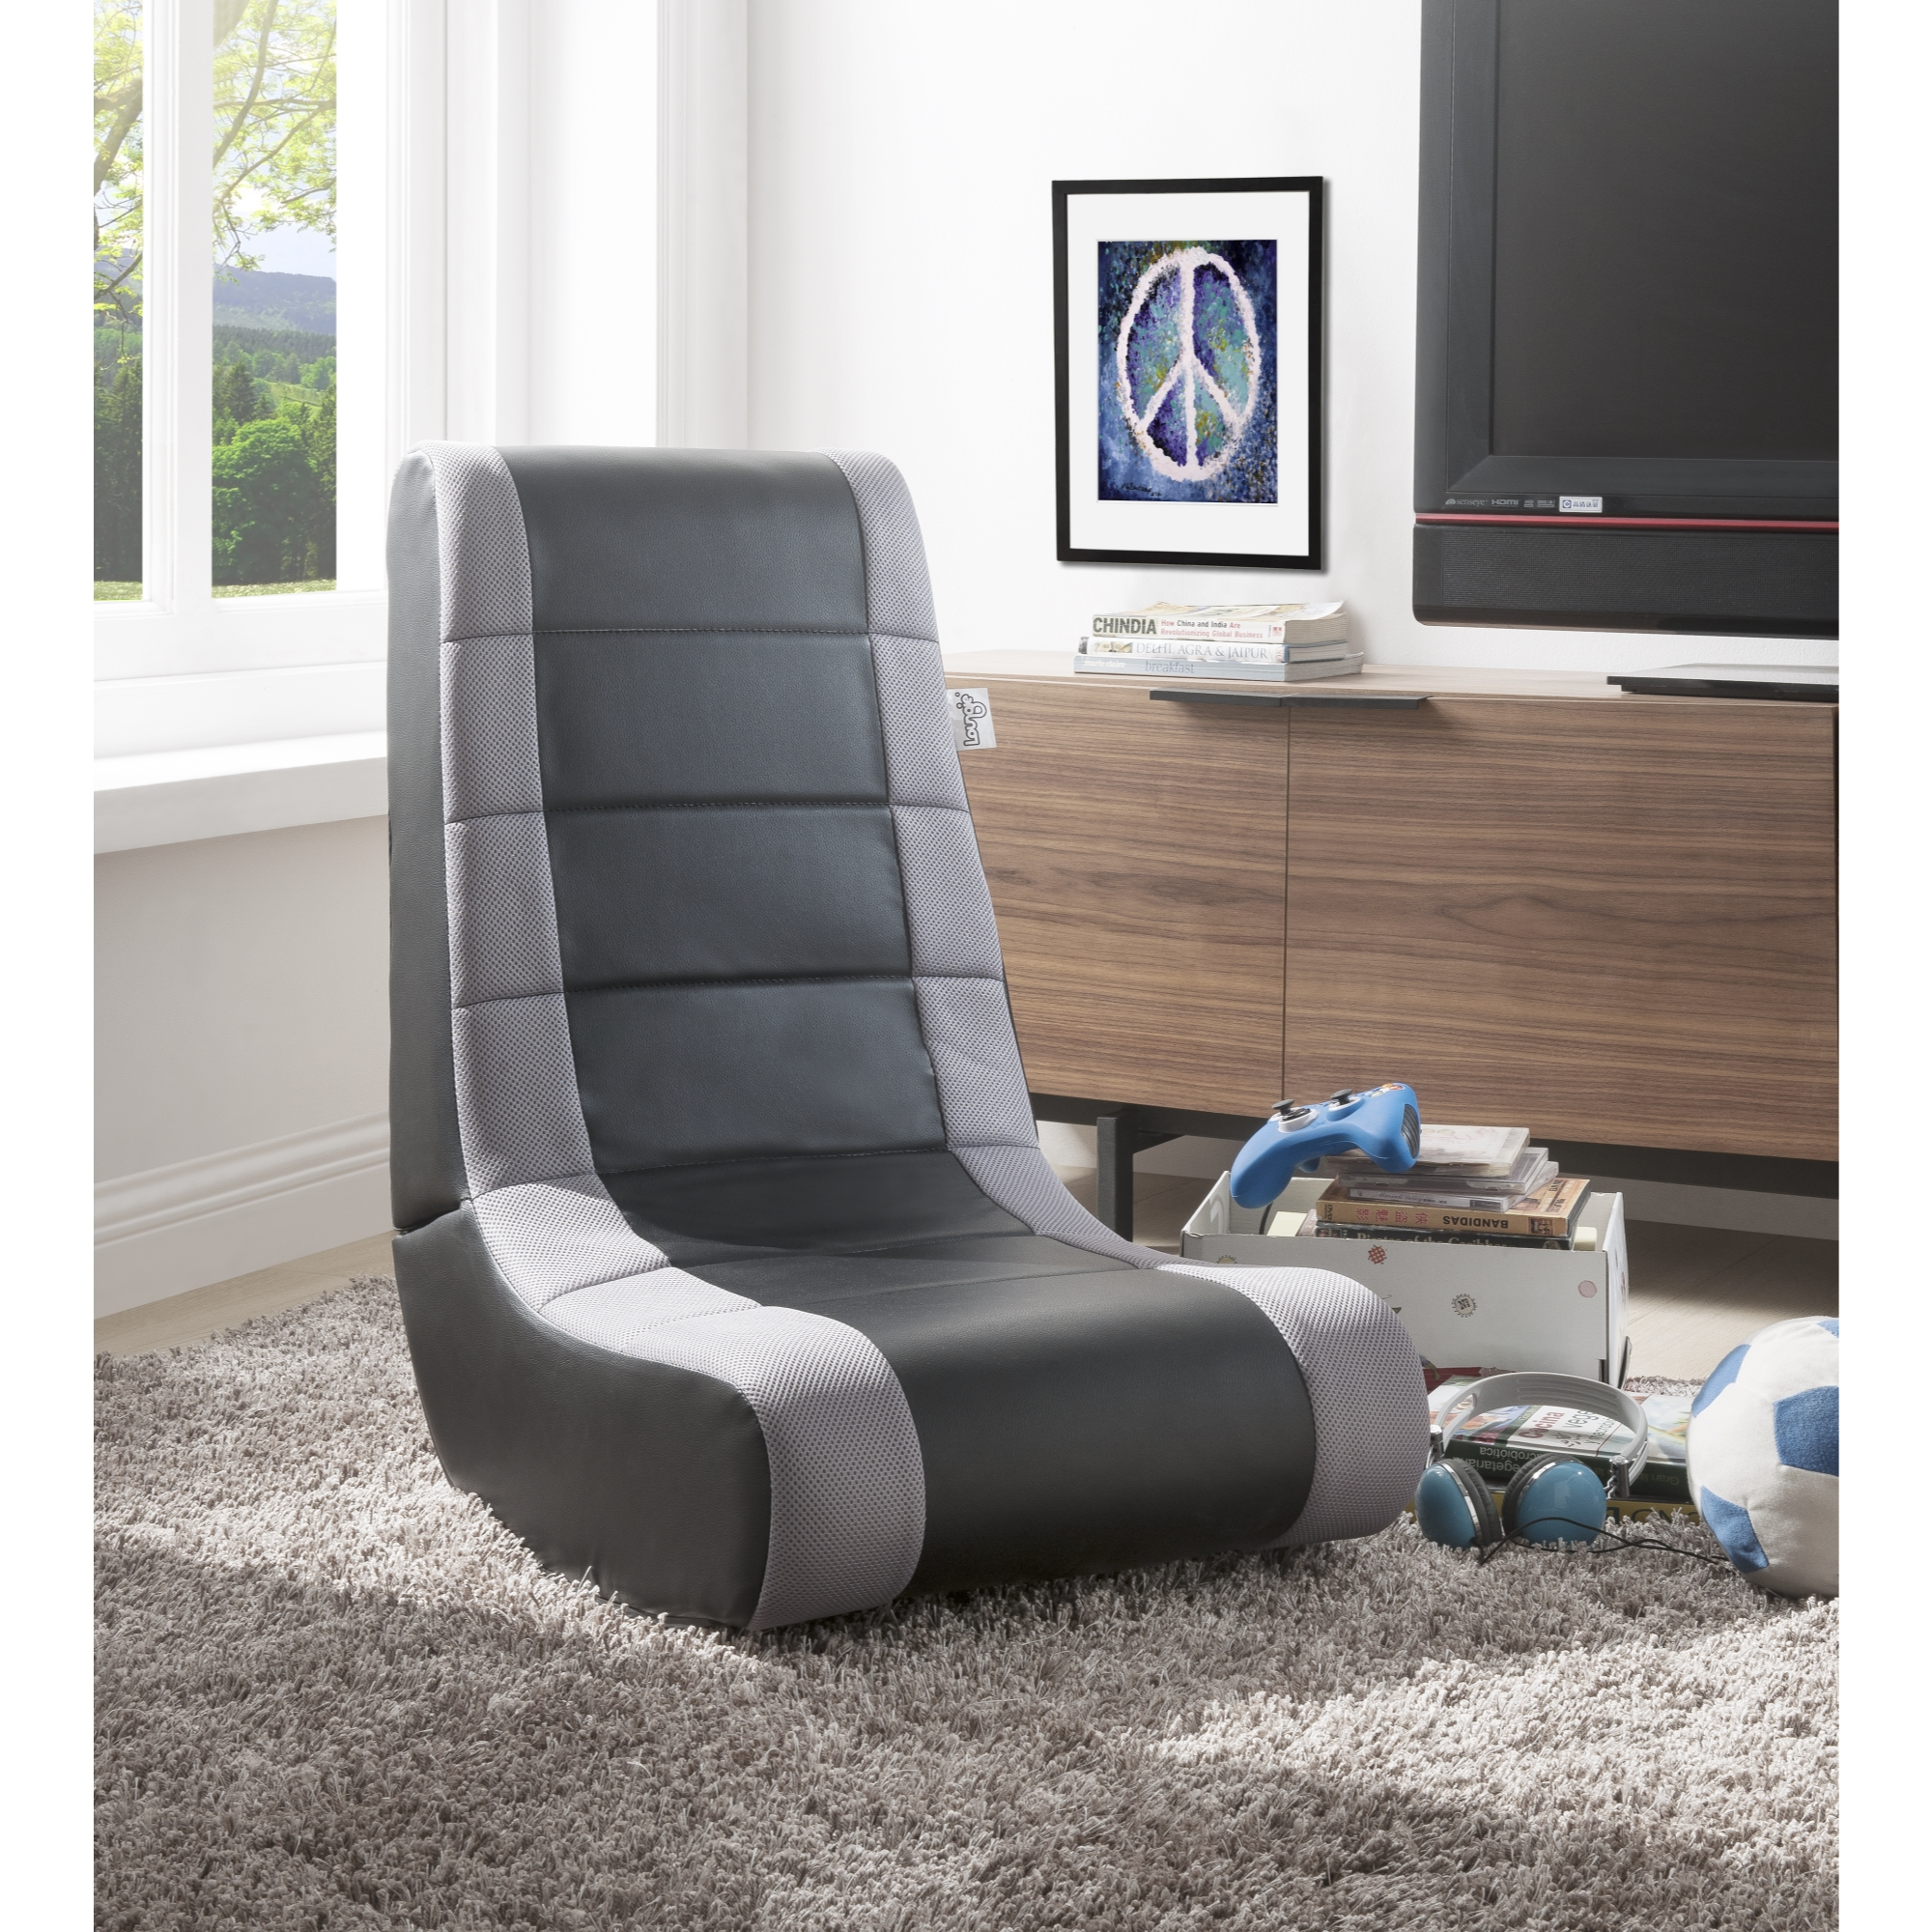 Loungie Black/Silver PU Leather Chair For Kids, Teens, Adults, Boys Or Girls